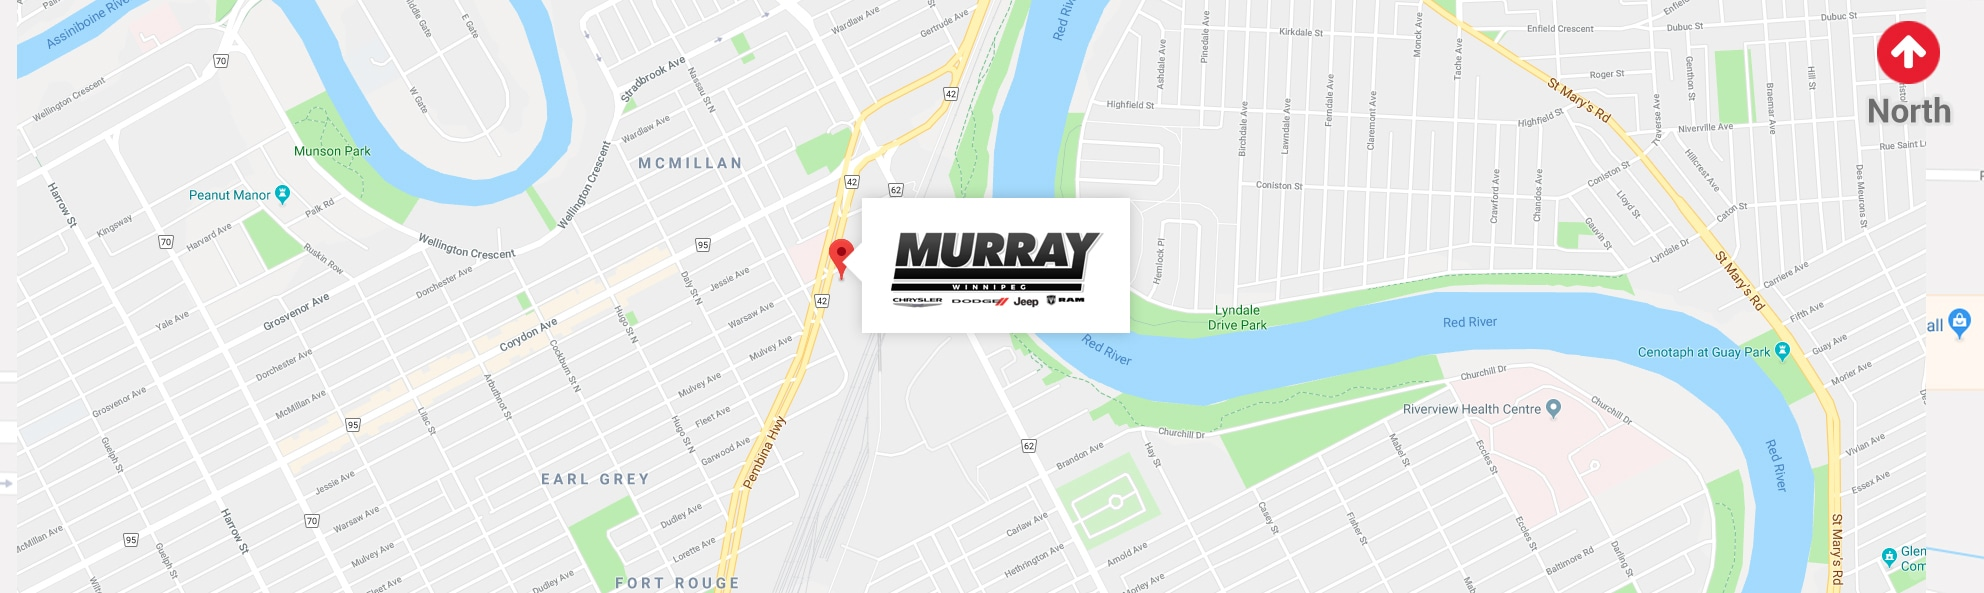 Murray GM Moosejaw